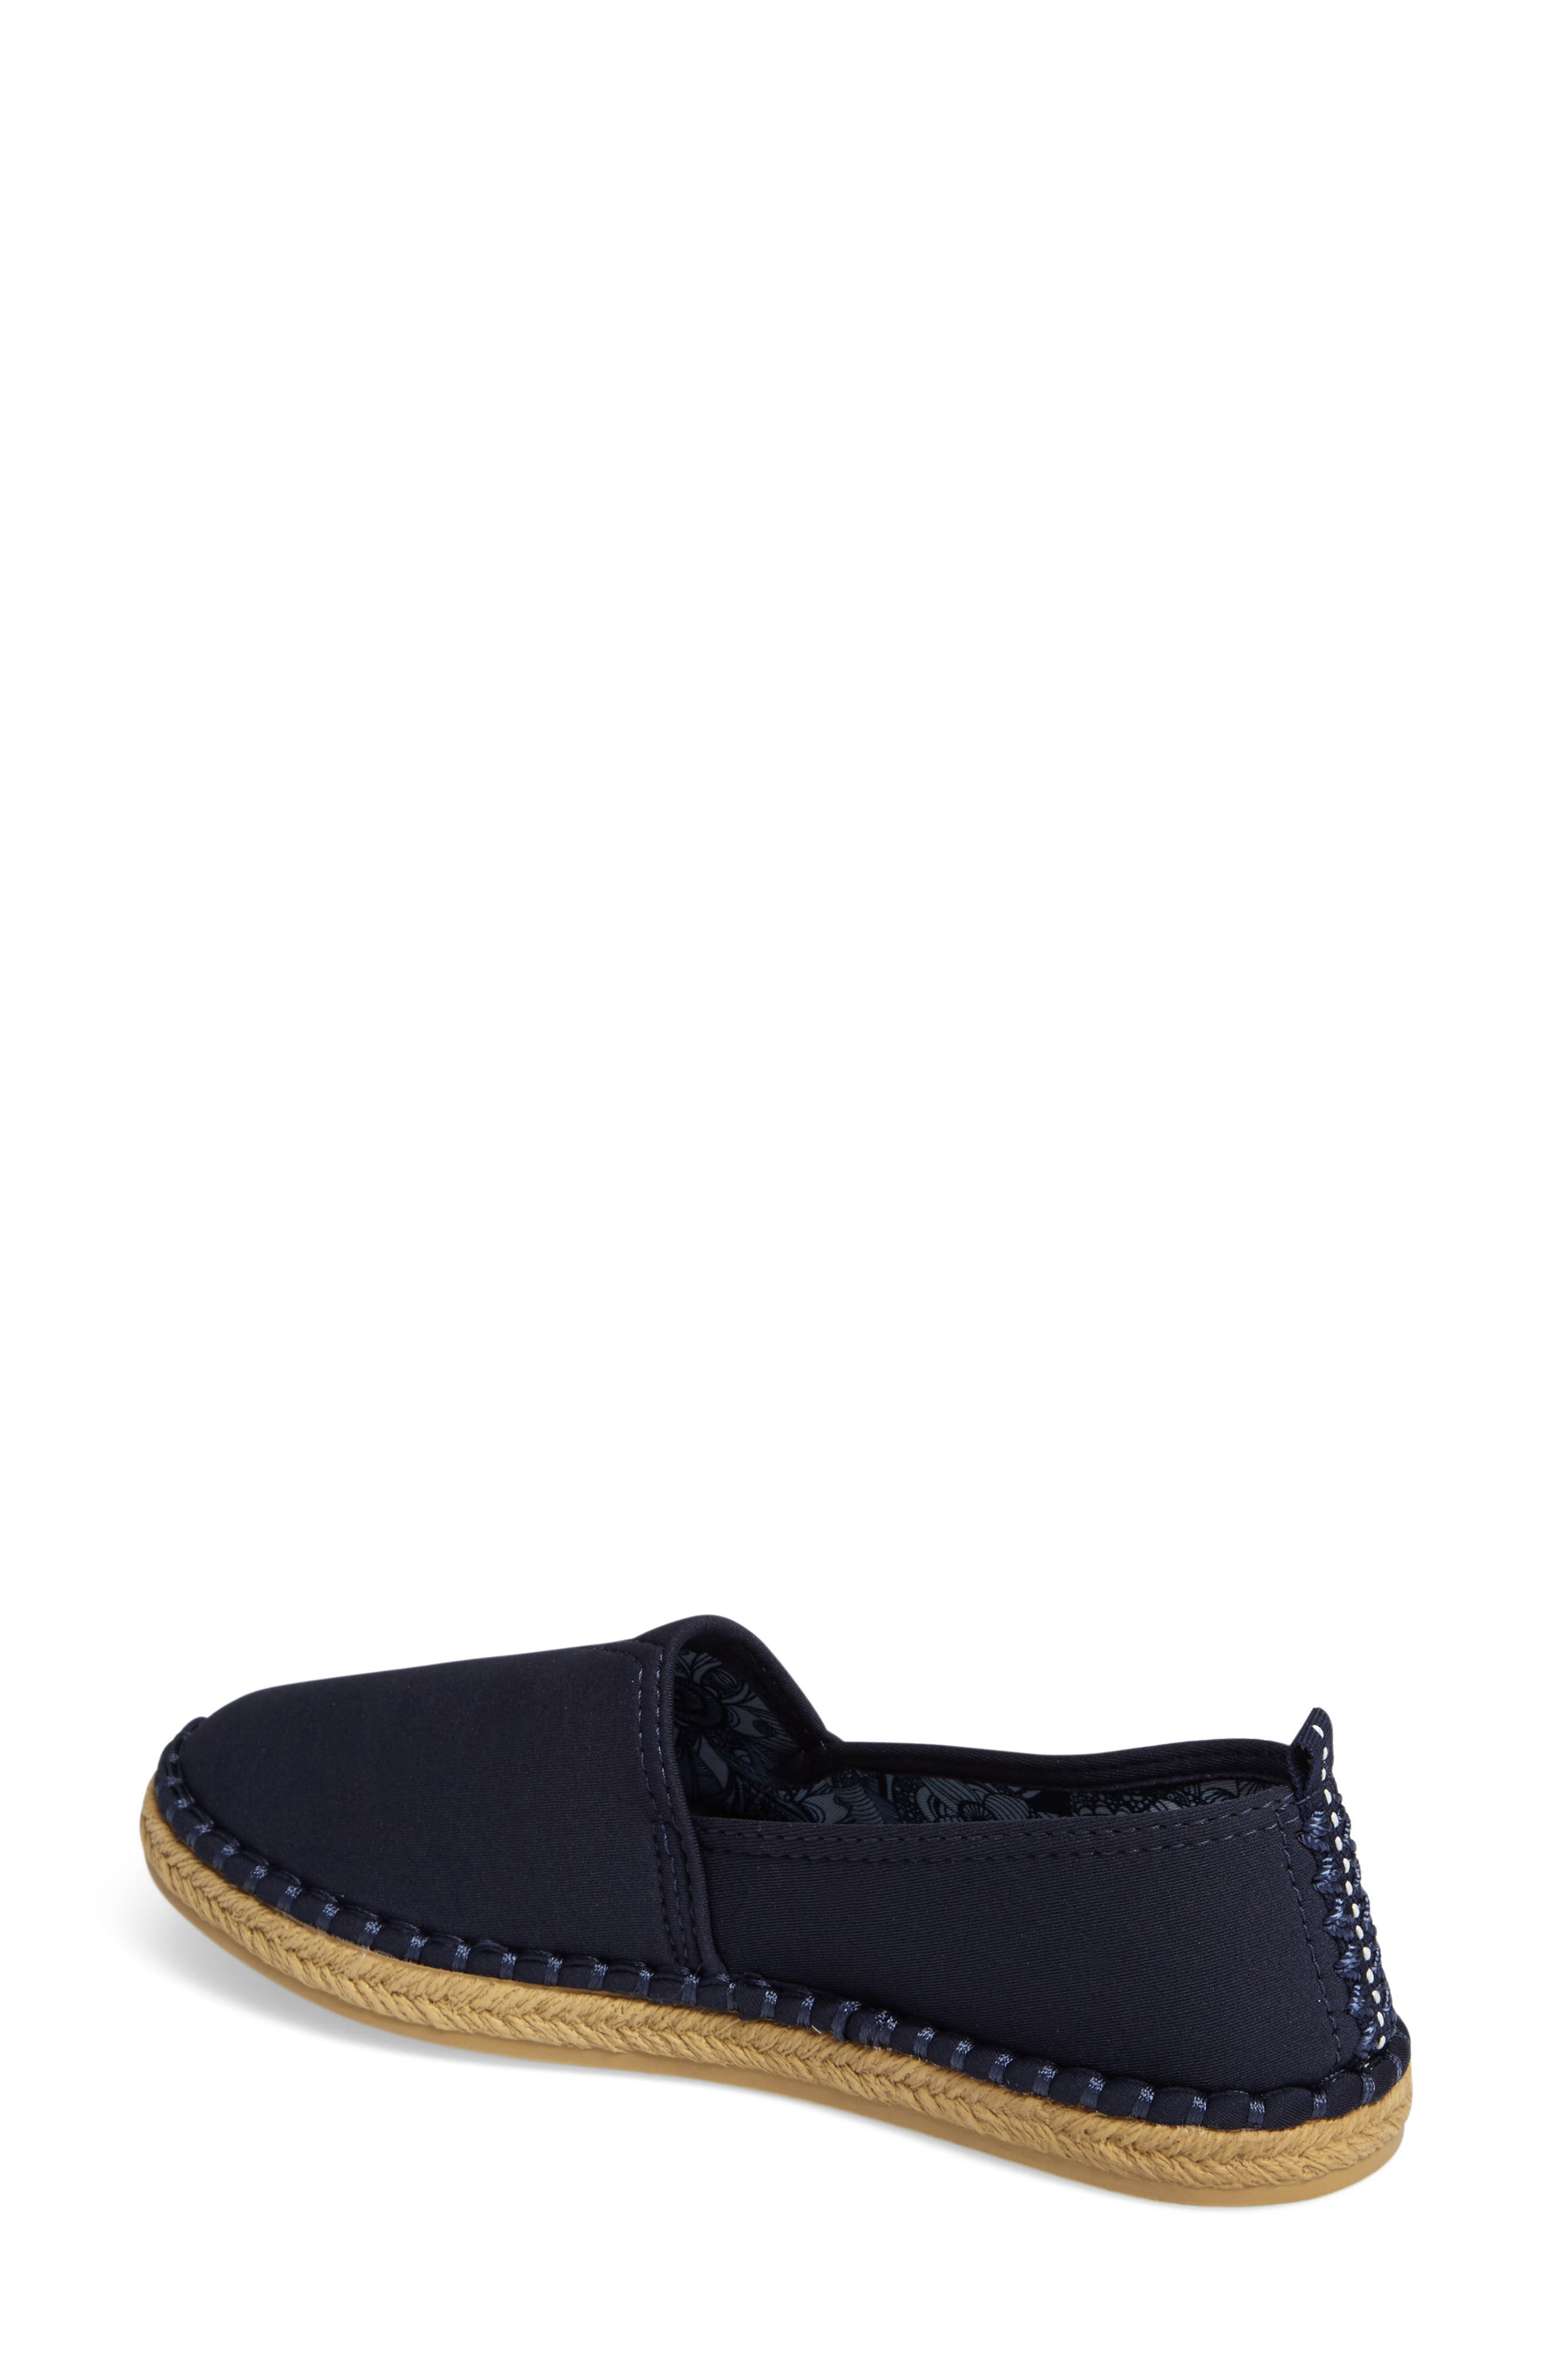 Eton Espadrille Flat,                             Alternate thumbnail 12, color,